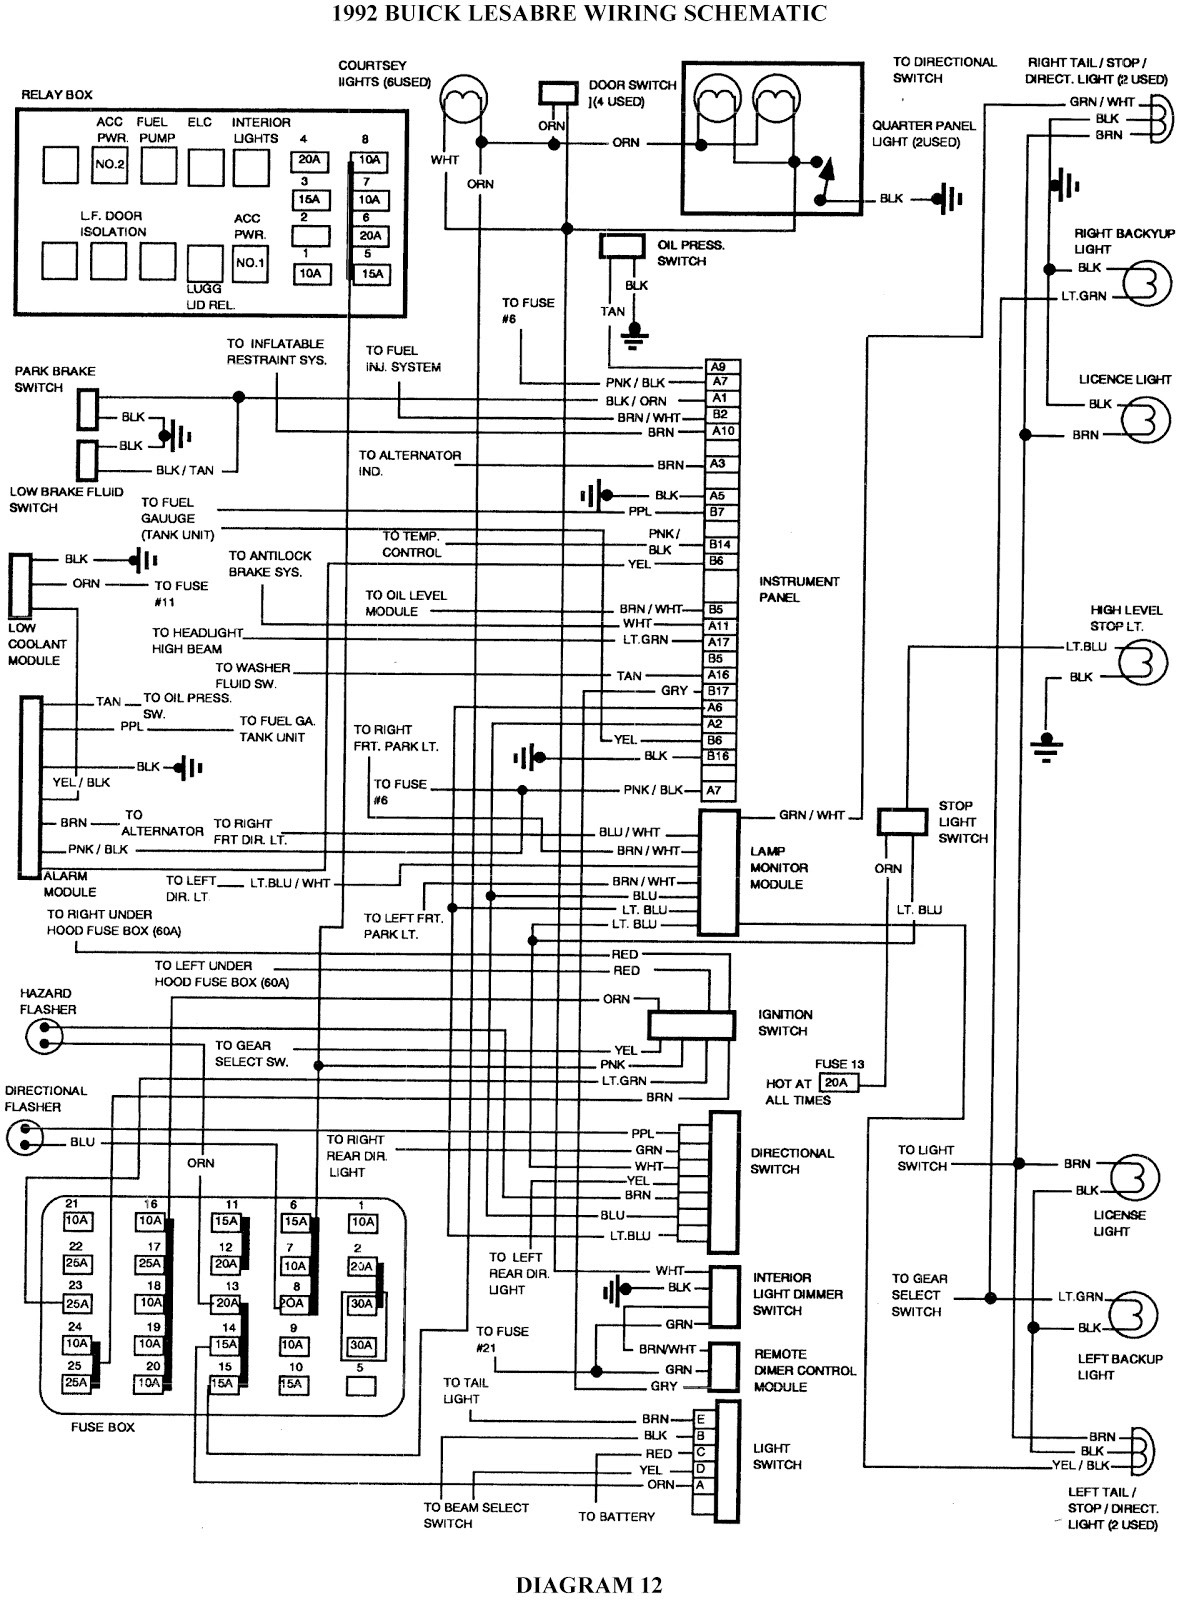 1997 Buick Lesabre Radio Wiring Diagram Alternator Welder 1992 Schematic Diagrams